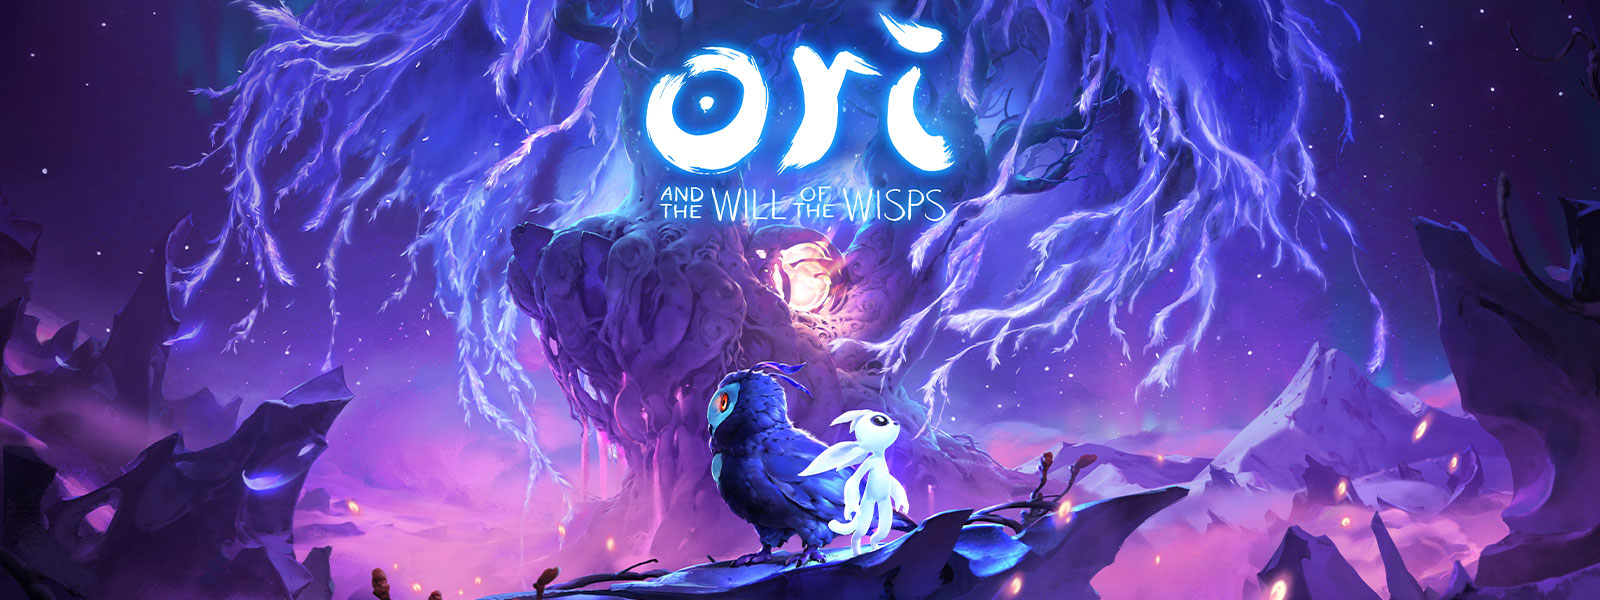 Ori and the Will of the Wisps, Ori se tient à côté d'un hibou devant un arbre violet aux allures fantastiques